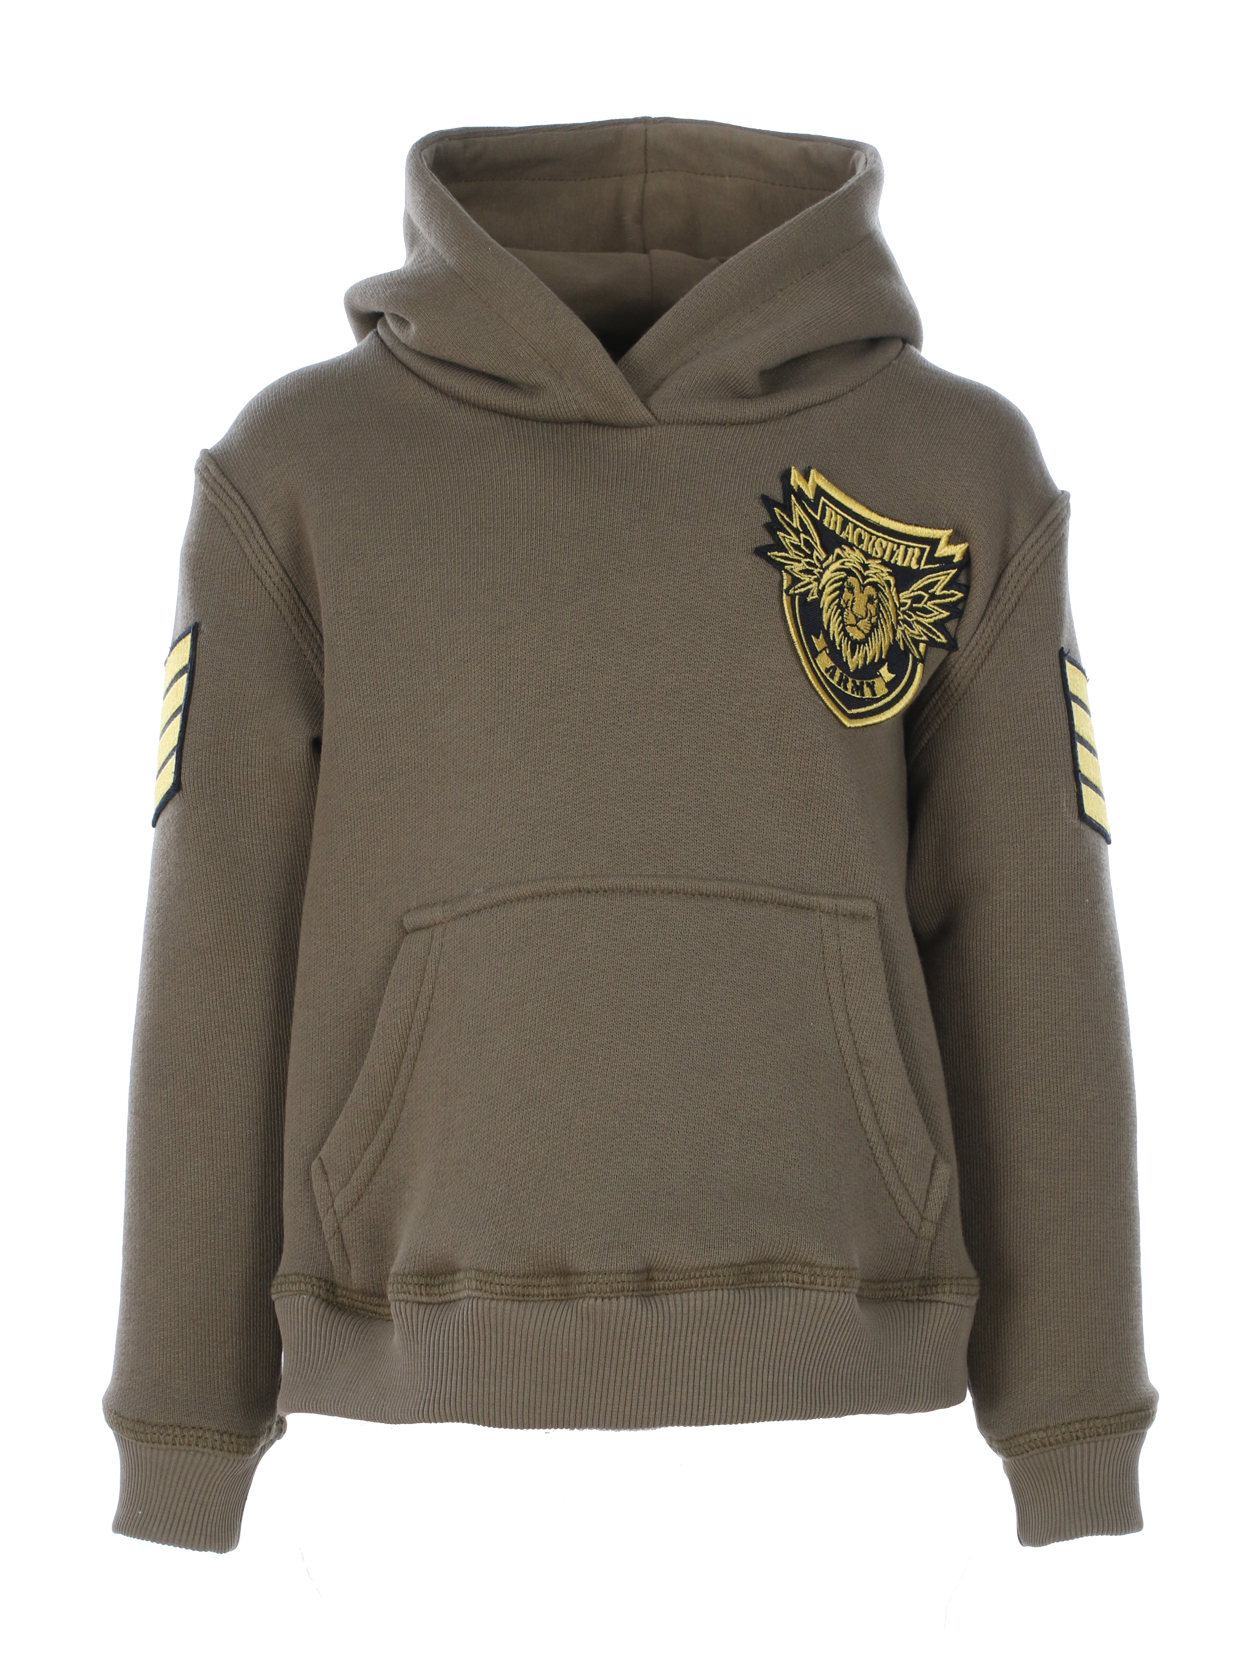 Kids hoodie Black Star ArmyKids hoodie by Black Star Wear. Straight fit, big hood and front pocket. Elastic band on sleeves and cut. Patch with lions head and Black Star Army lettering on the chest, chevrons on sleeves. Classic model in khaki.<br><br>size: 7-8 years<br>color: Khaki<br>gender: unisex